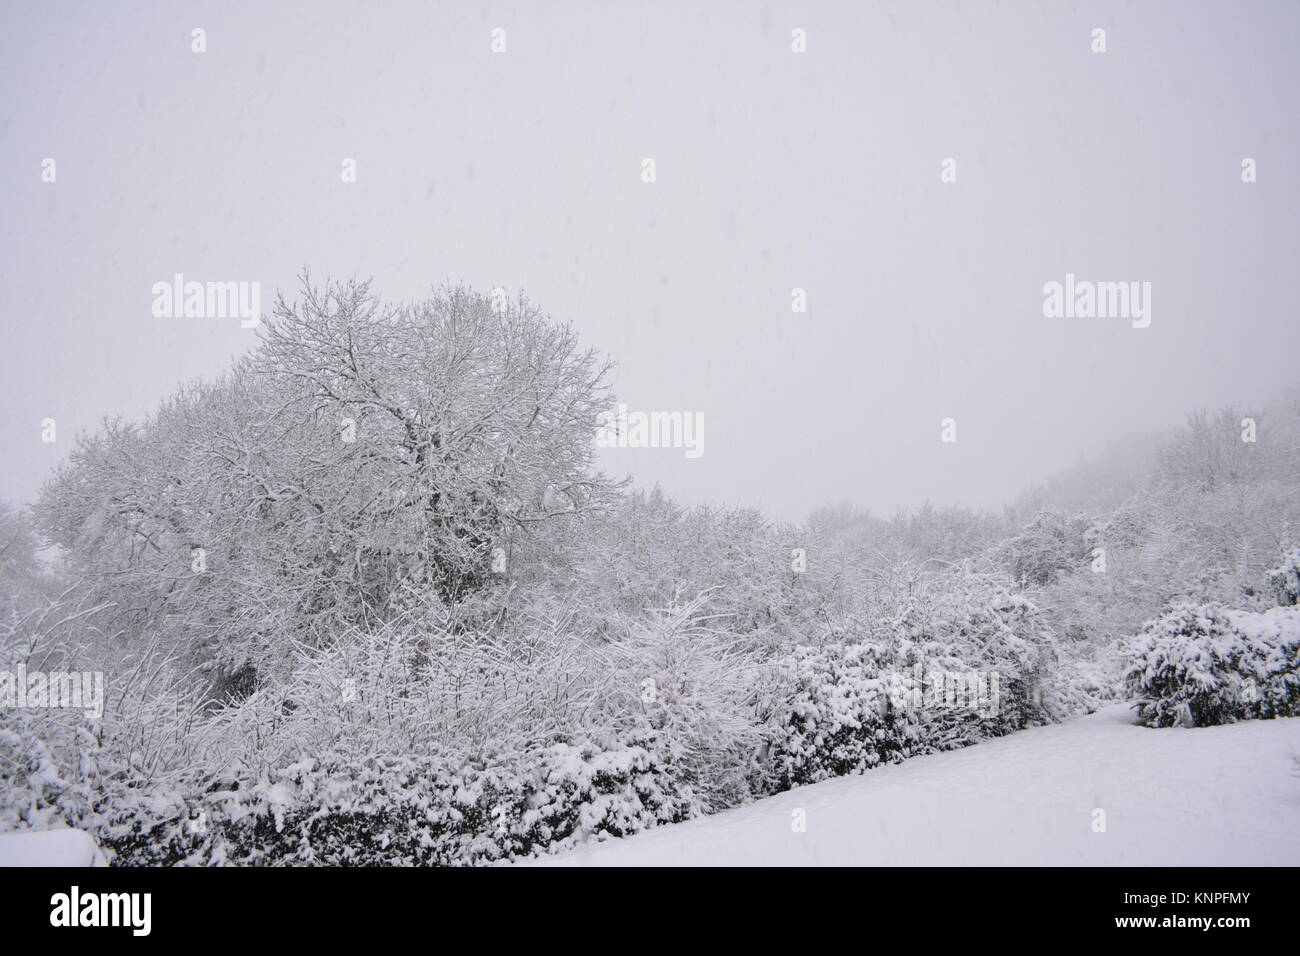 sloping garden with lawn trees and bushes after a very heavy snowfall in winter time and a sky fall of snow yet - Stock Image